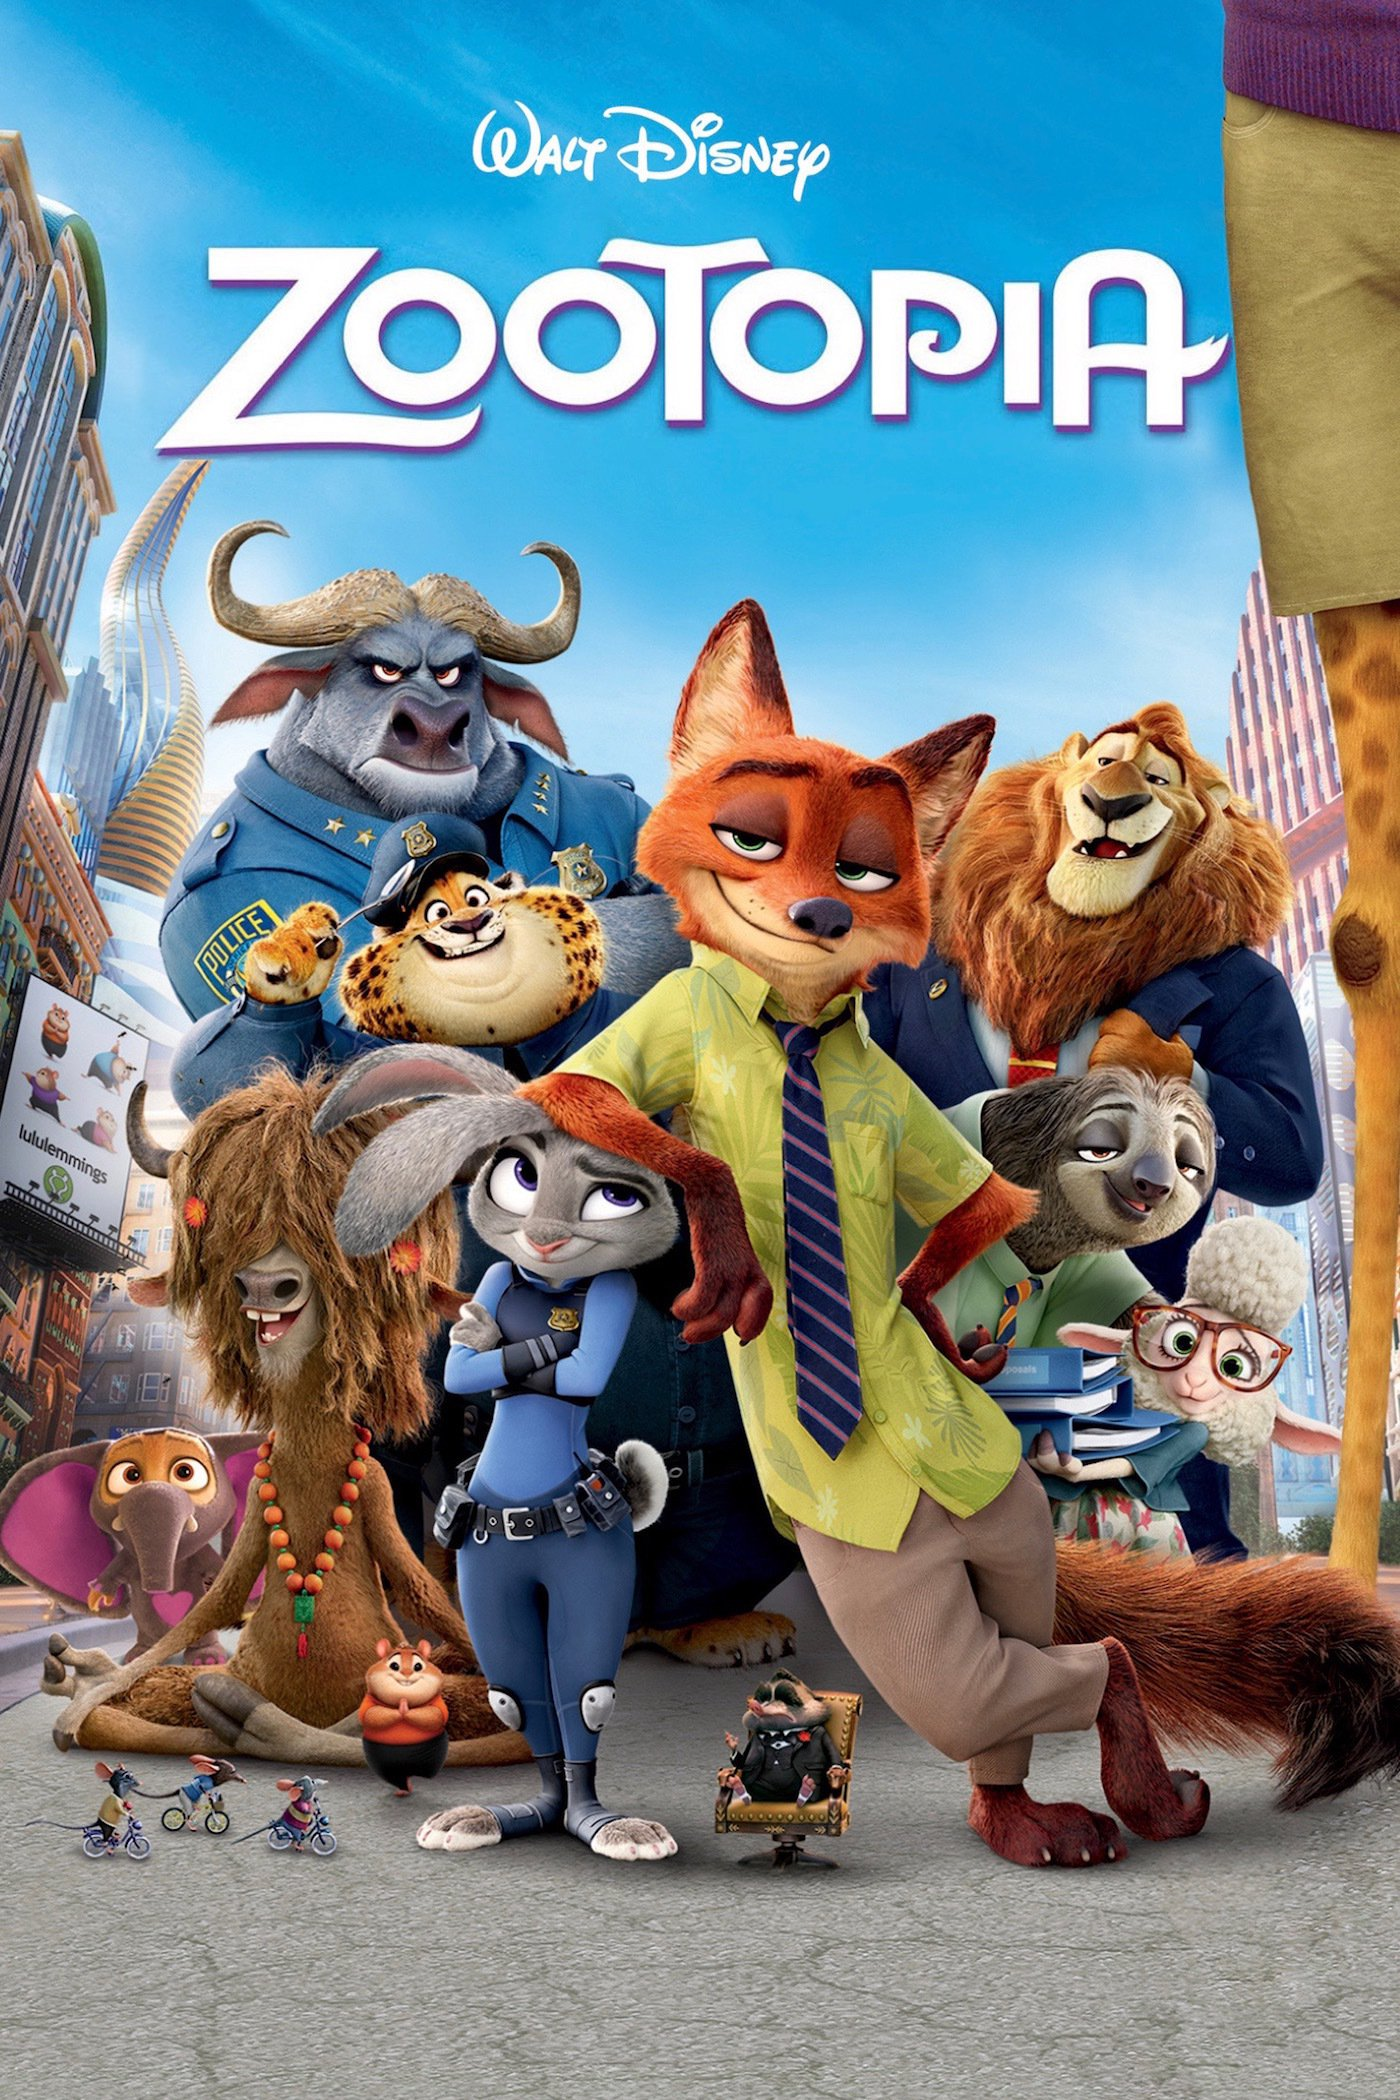 Zootopia Best Posters - Official POster